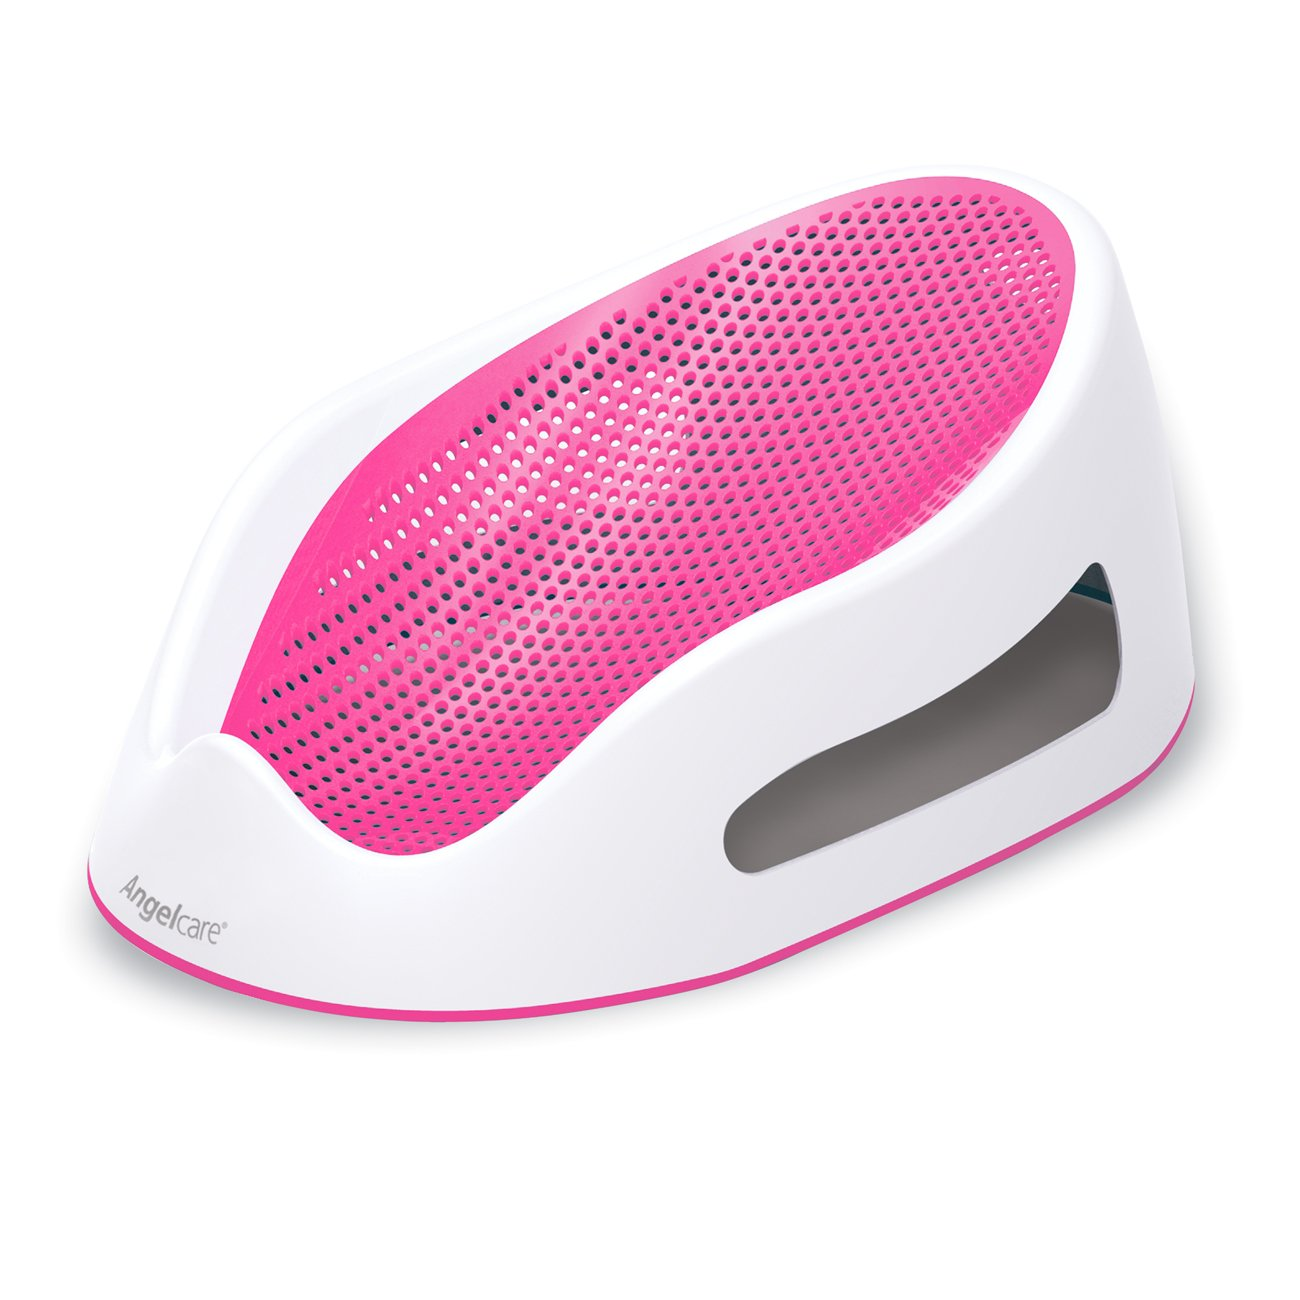 Angelcare Soft Touch Bath Support - Pink: Amazon.co.uk: Baby